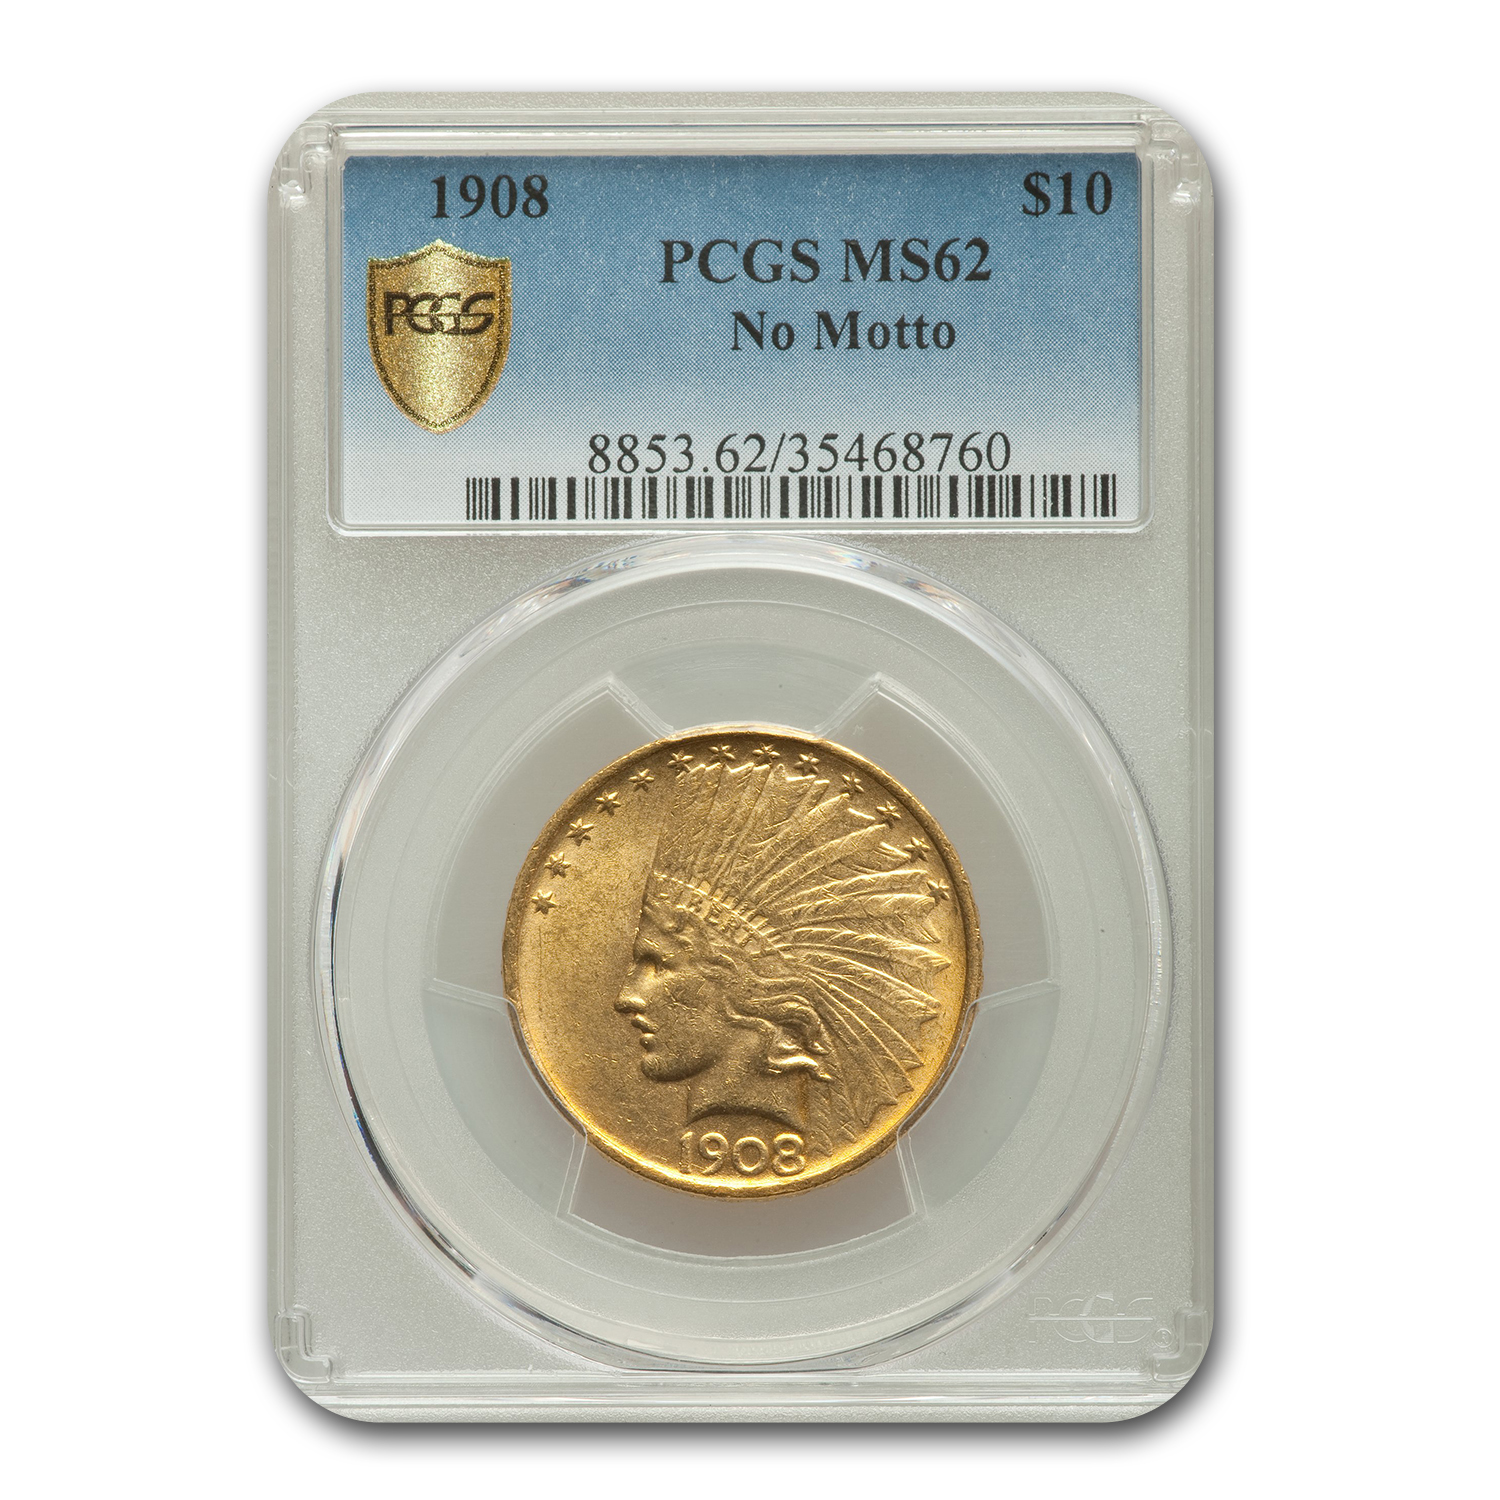 1908 $10 Indian Gold Eagle No Motto MS-62 PCGS